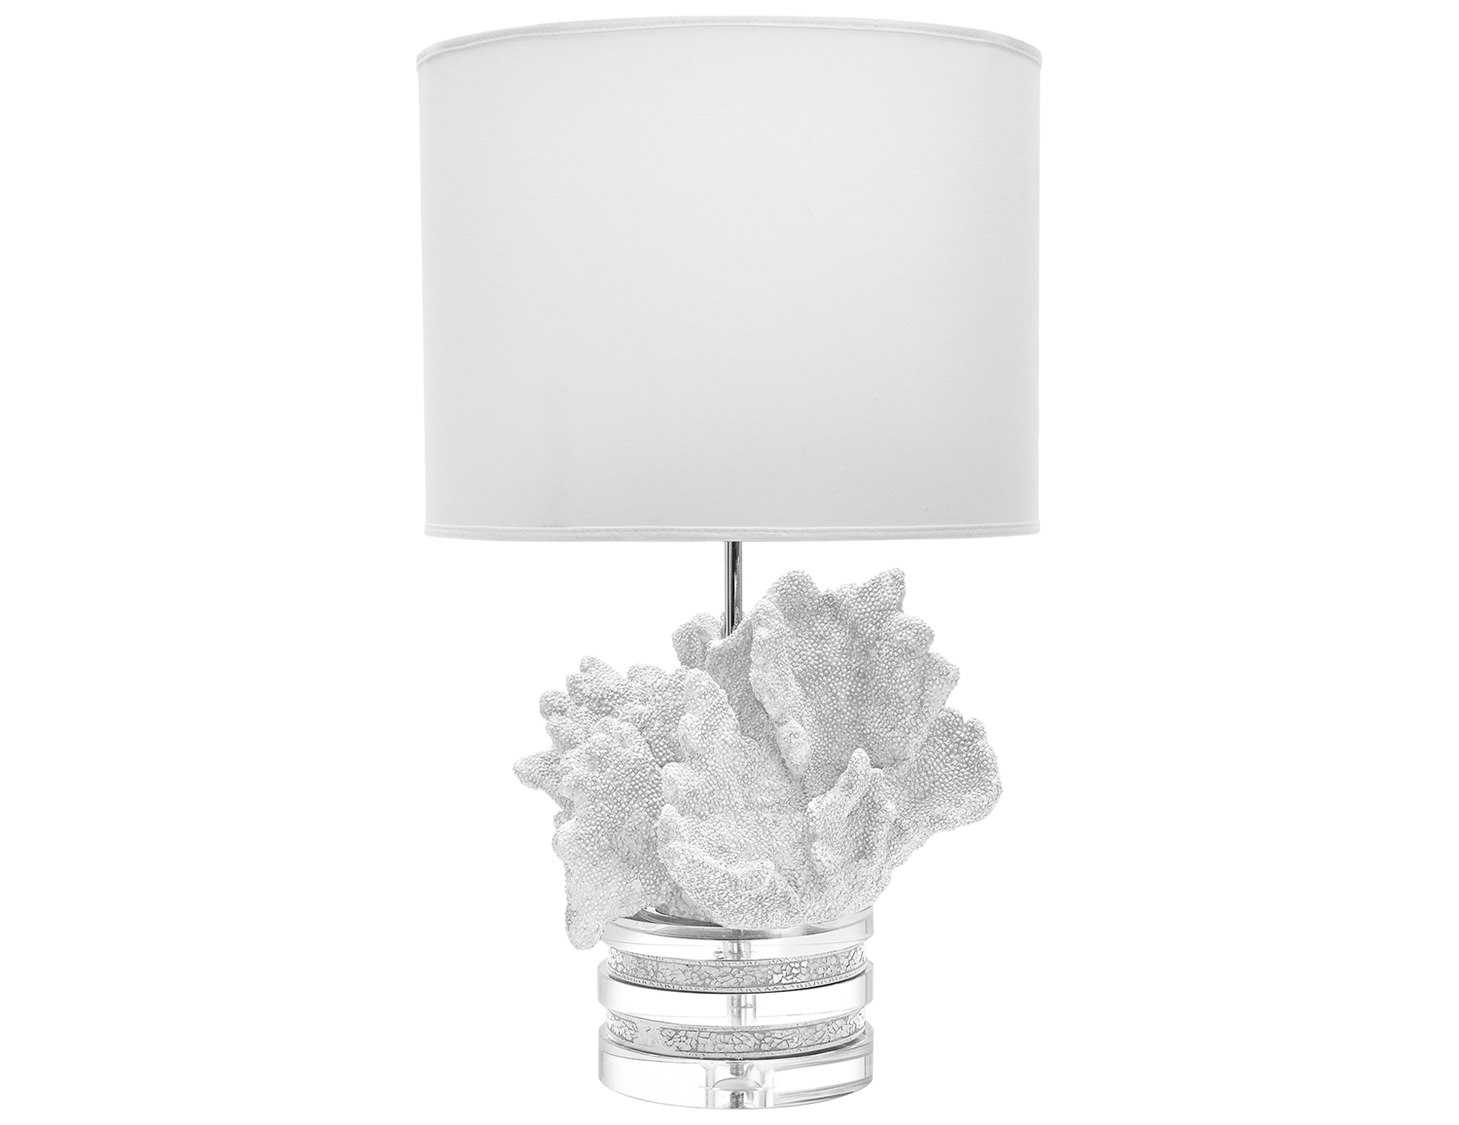 dimond home white coral crystal table lamp 225089. Black Bedroom Furniture Sets. Home Design Ideas